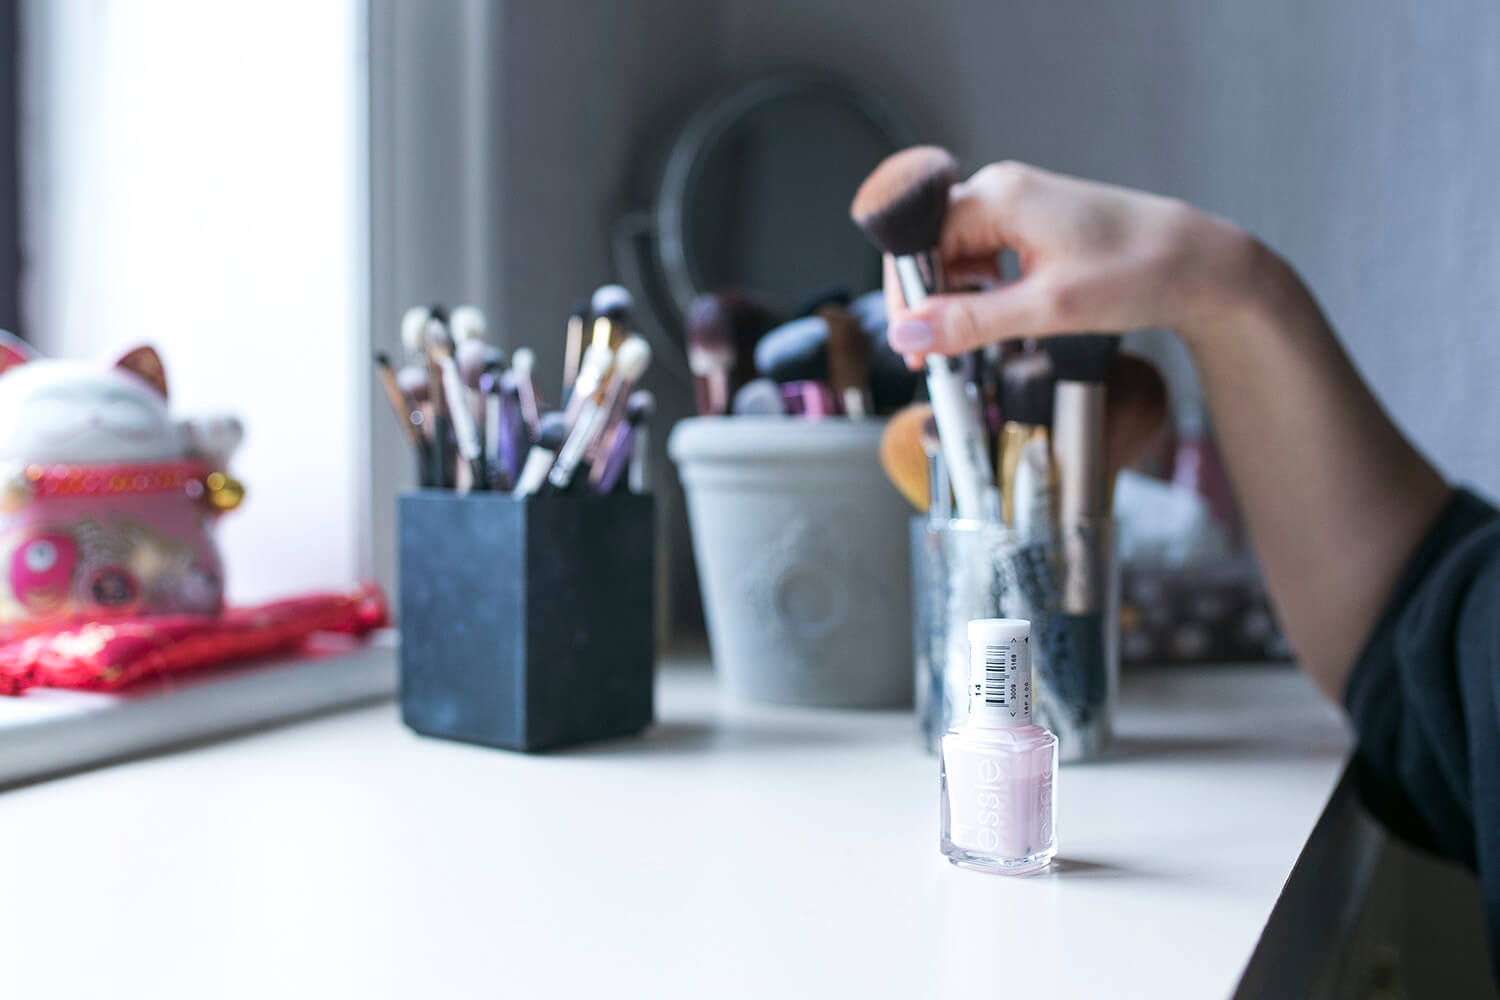 10-minute-morning-rituals-for-a-great-day-skincare-beauty-tips